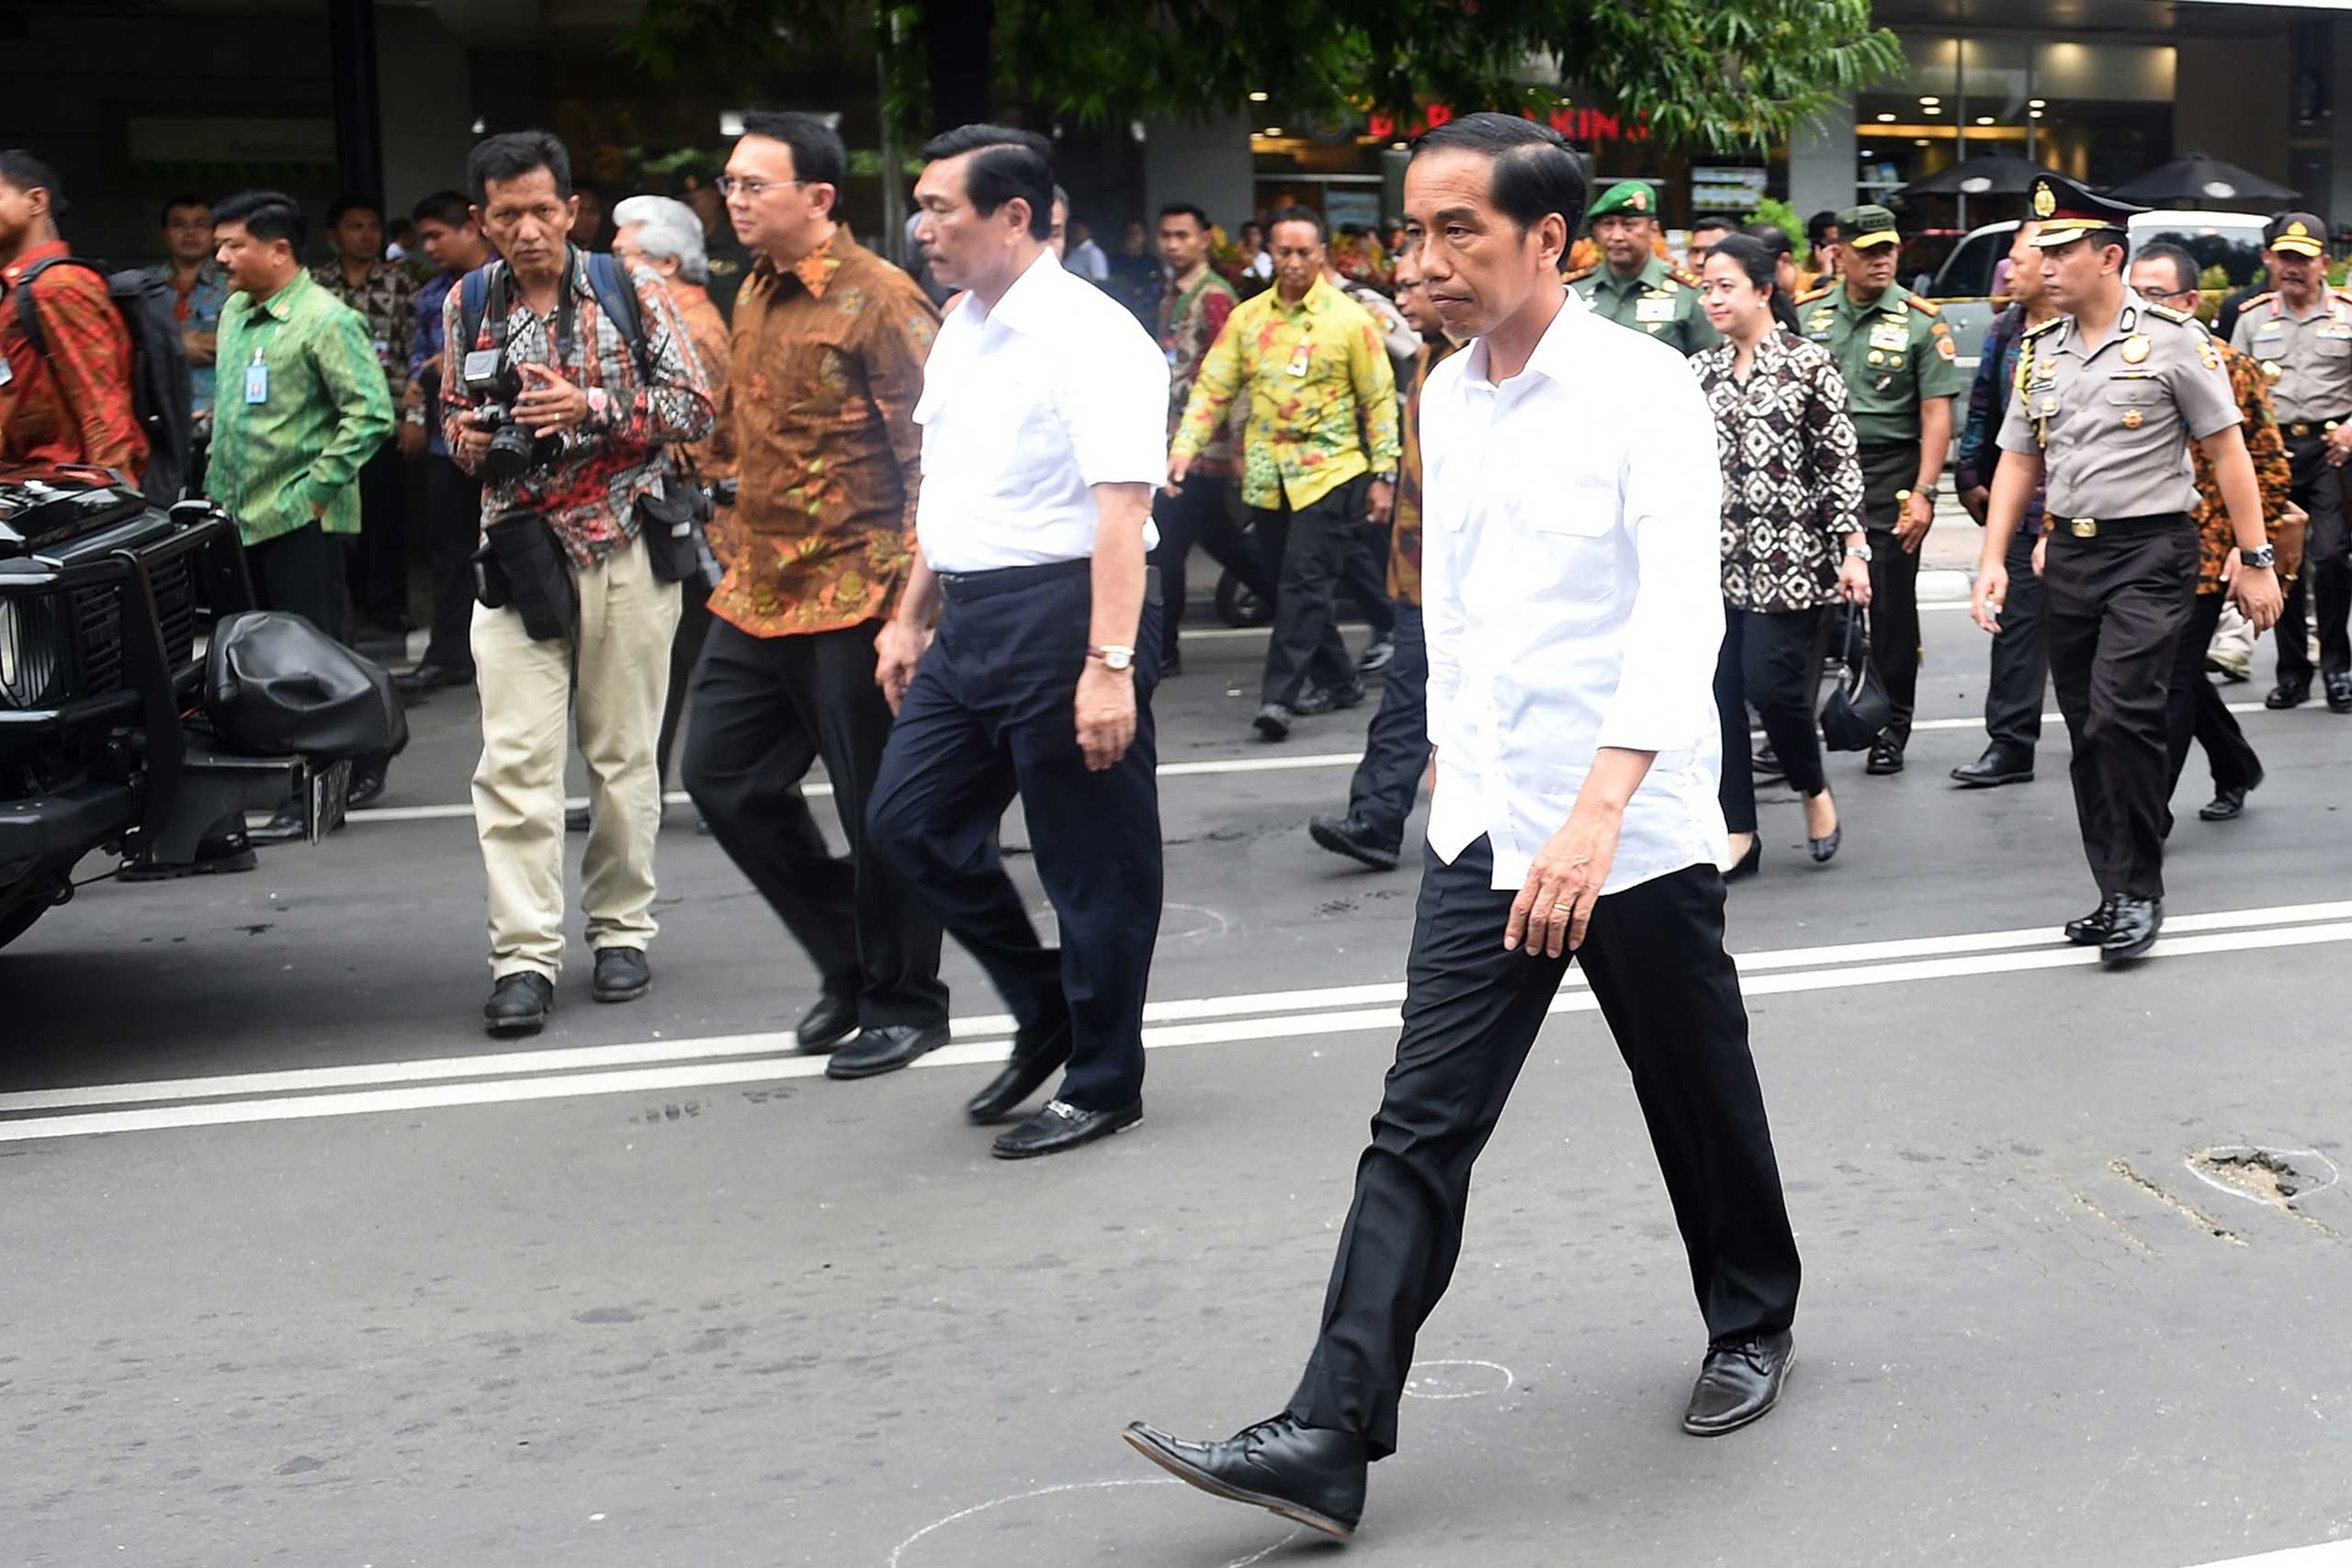 A handout picture provided by the Indonesian Presidential Palace shows President Joko Widodo visiting the blast site near a shopping mall in Jakarta, Indonesia, Jan. 14, 2016. At least seven people, including five suspected assailants, died in bomb blasts and gunfire in the attack.